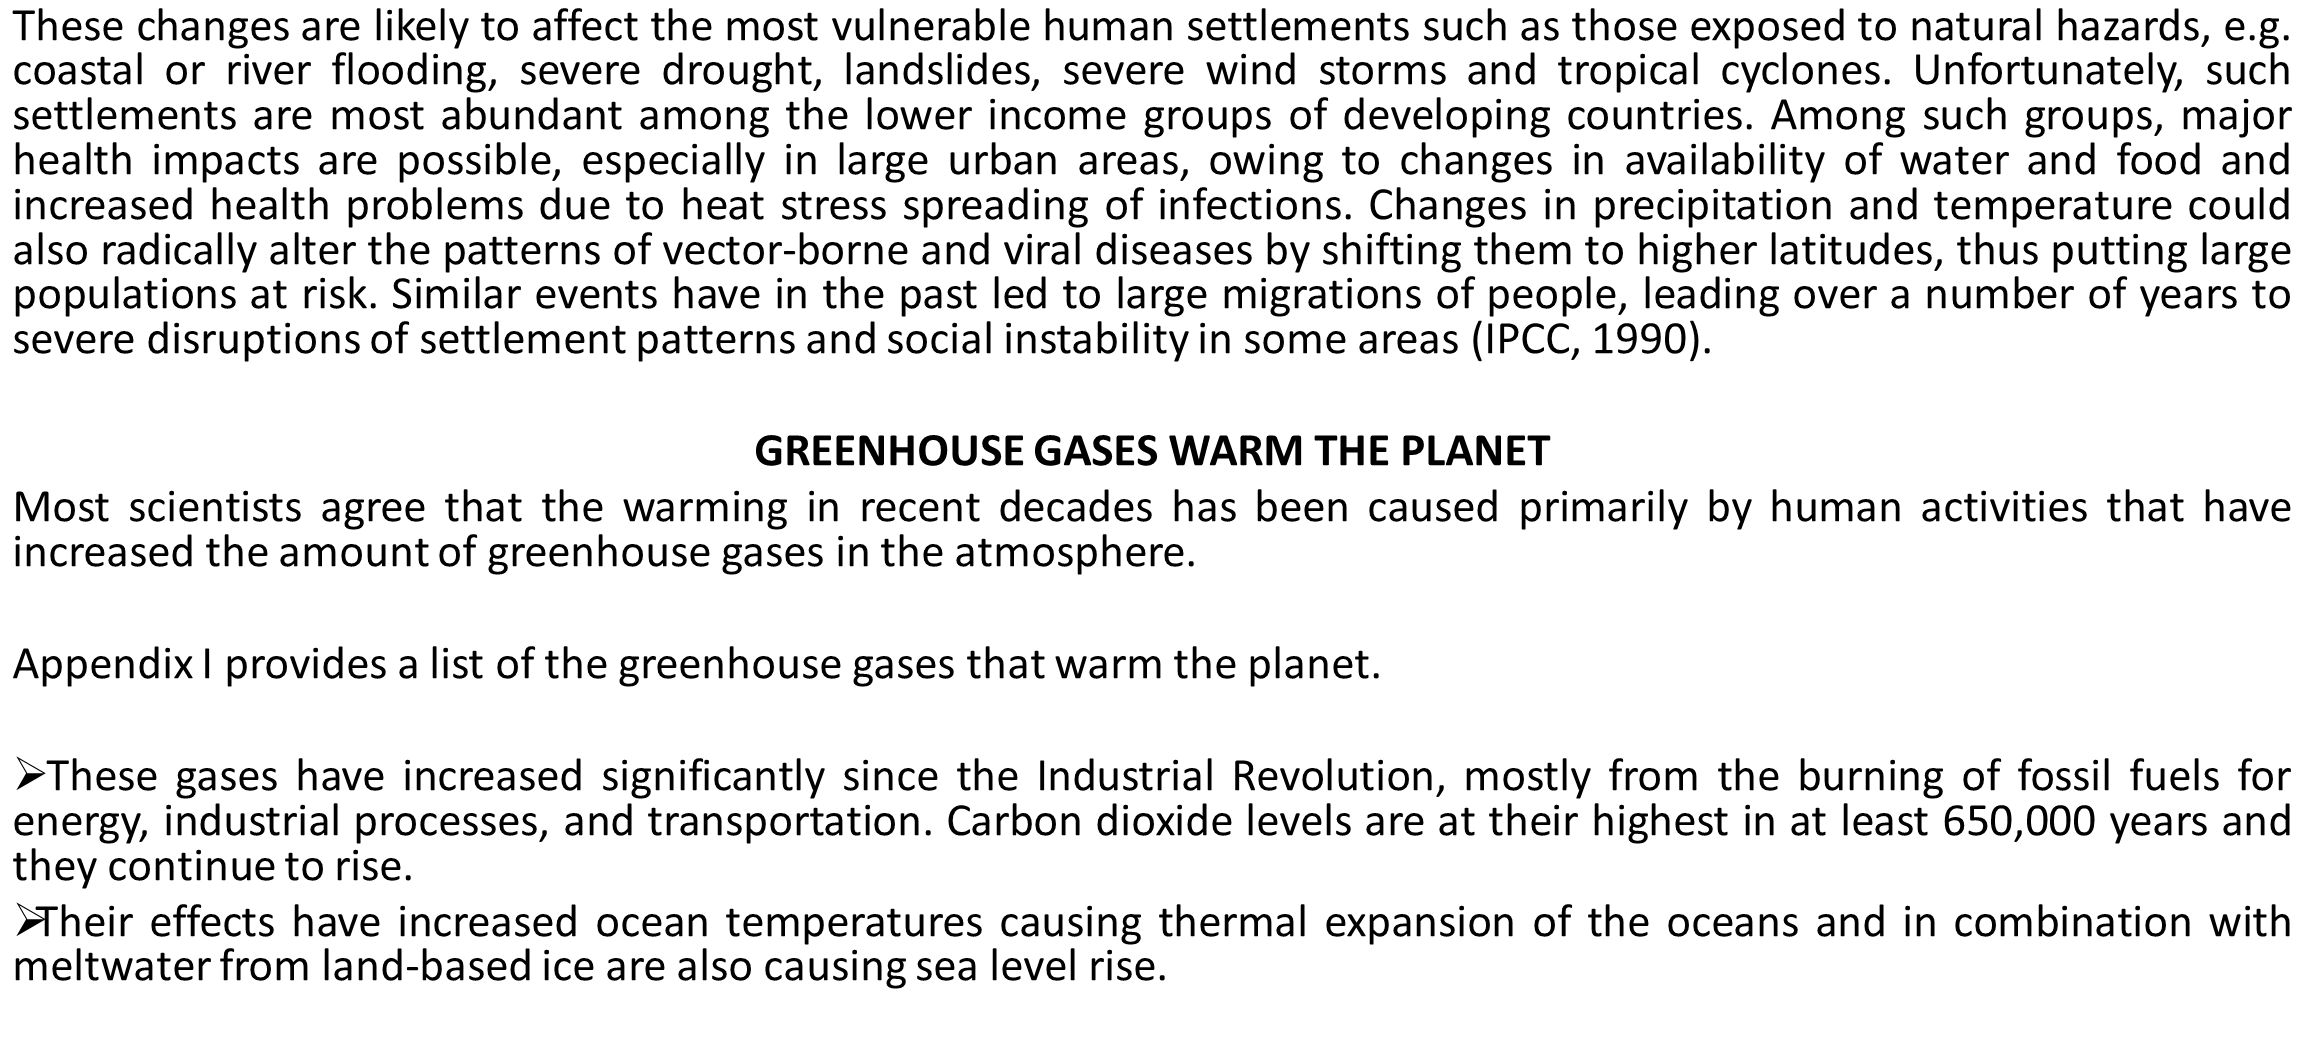 GREENHOUSE GASES WARM THE PLANET